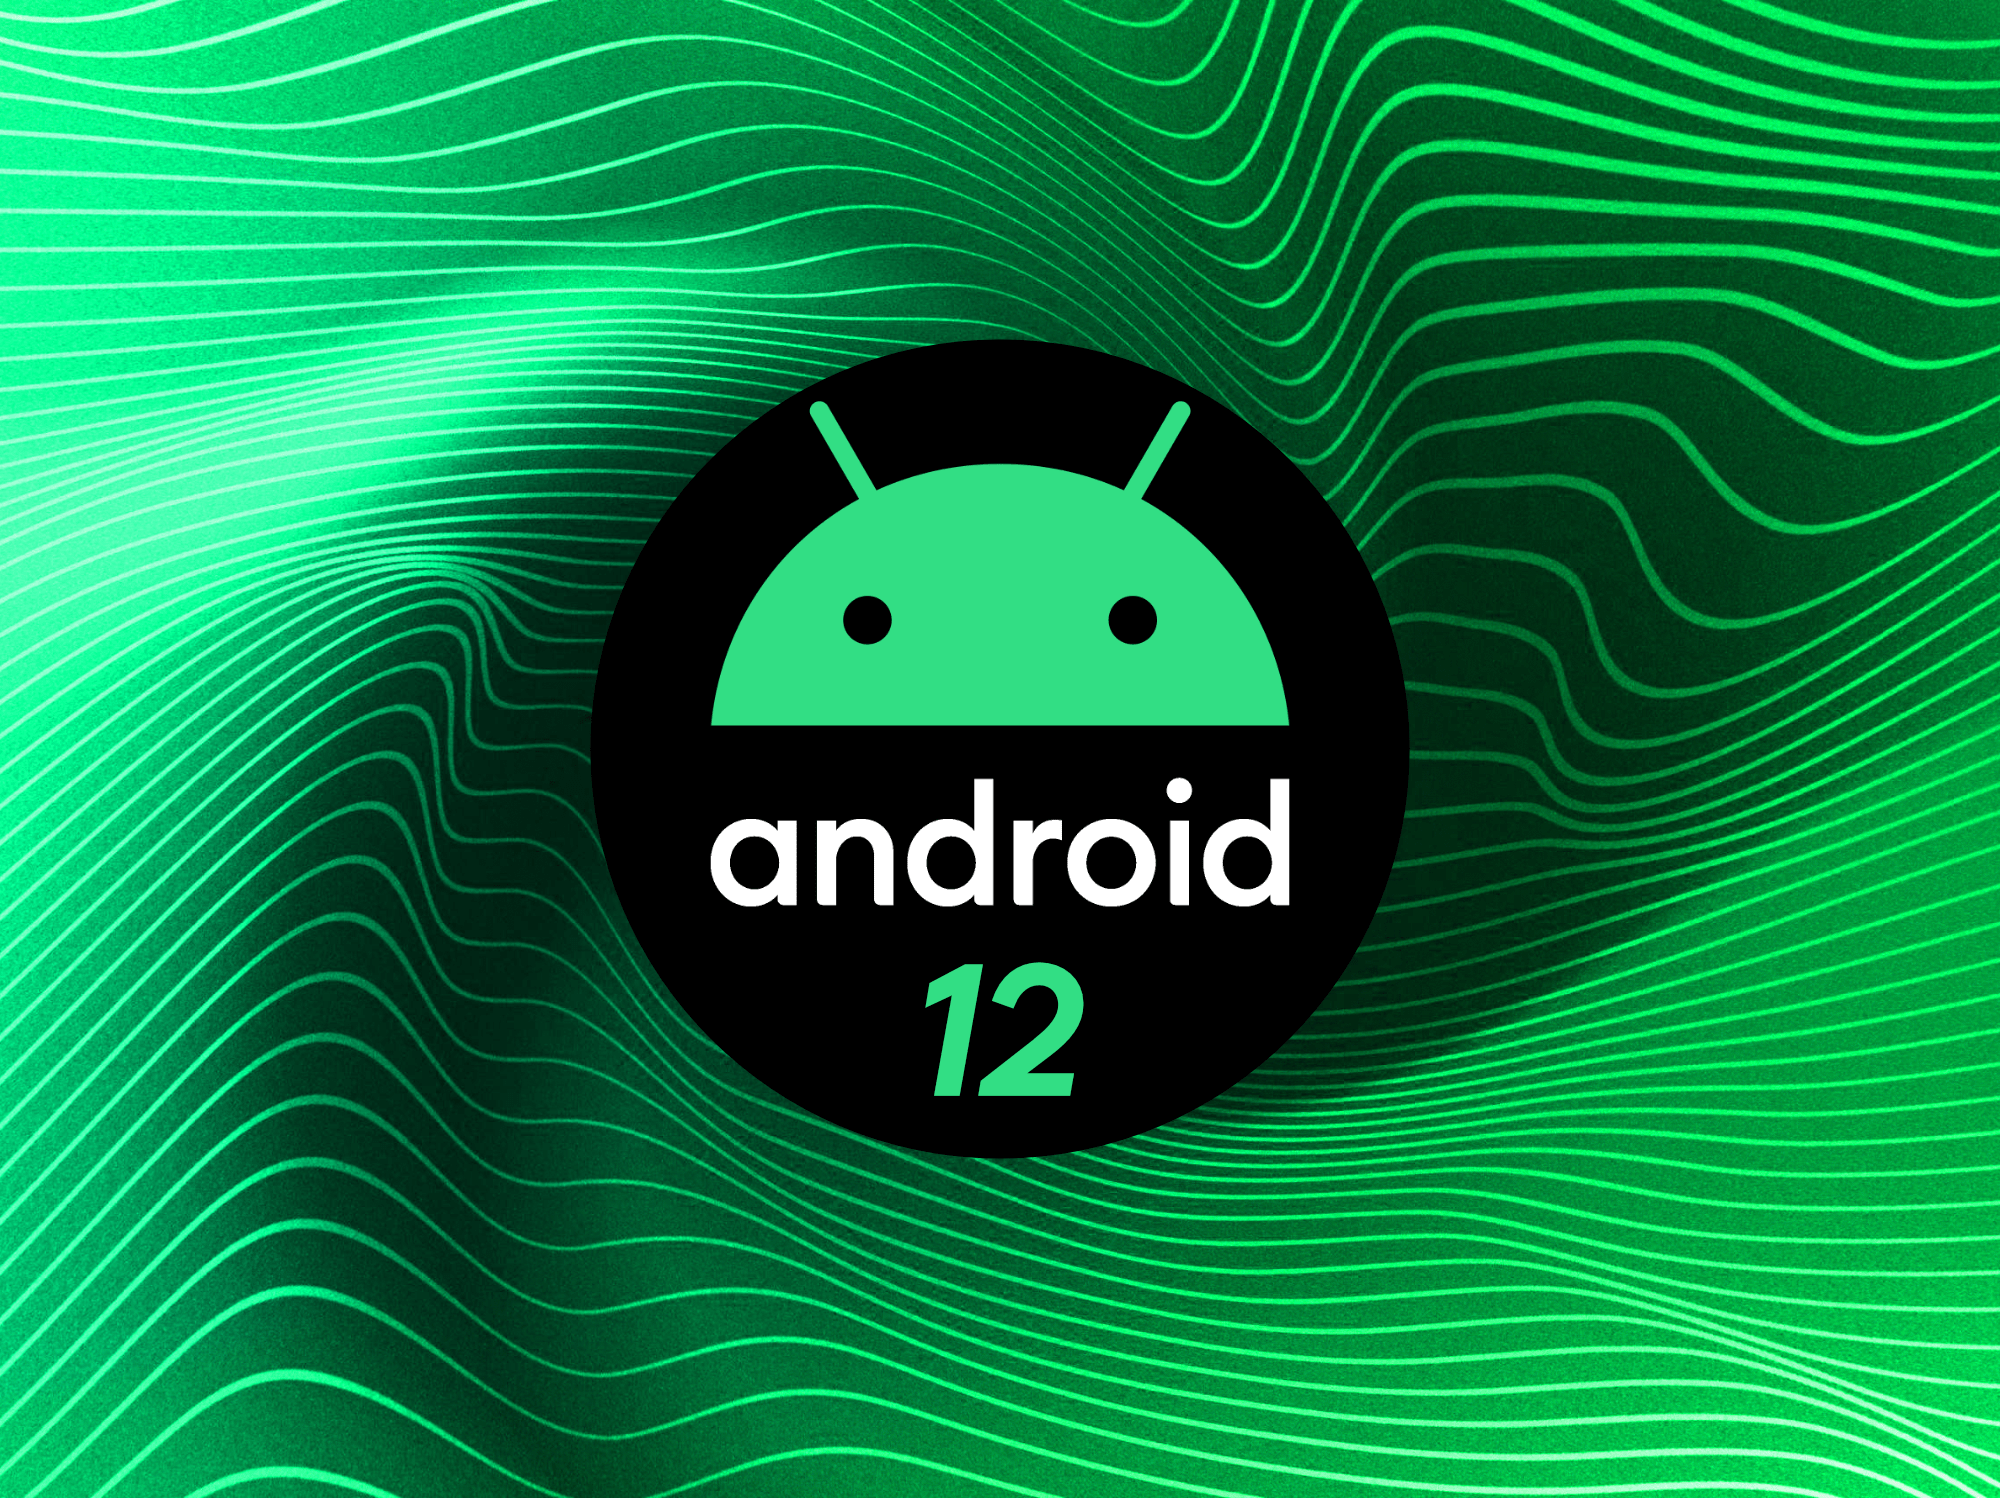 Android 12 may be launching on October 4th